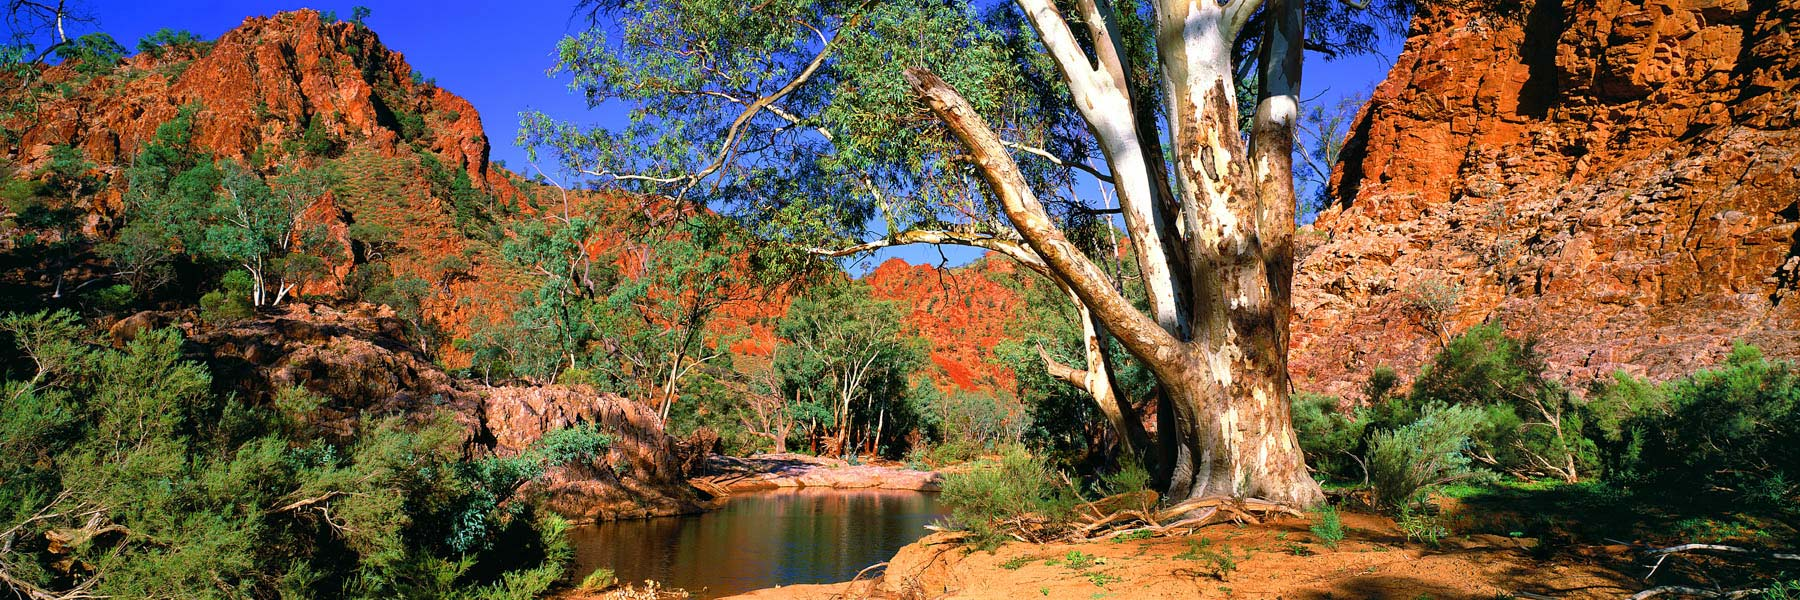 A beautiful day at Echo Camp Waterhole, Flinders Ranges, SA, Australia.